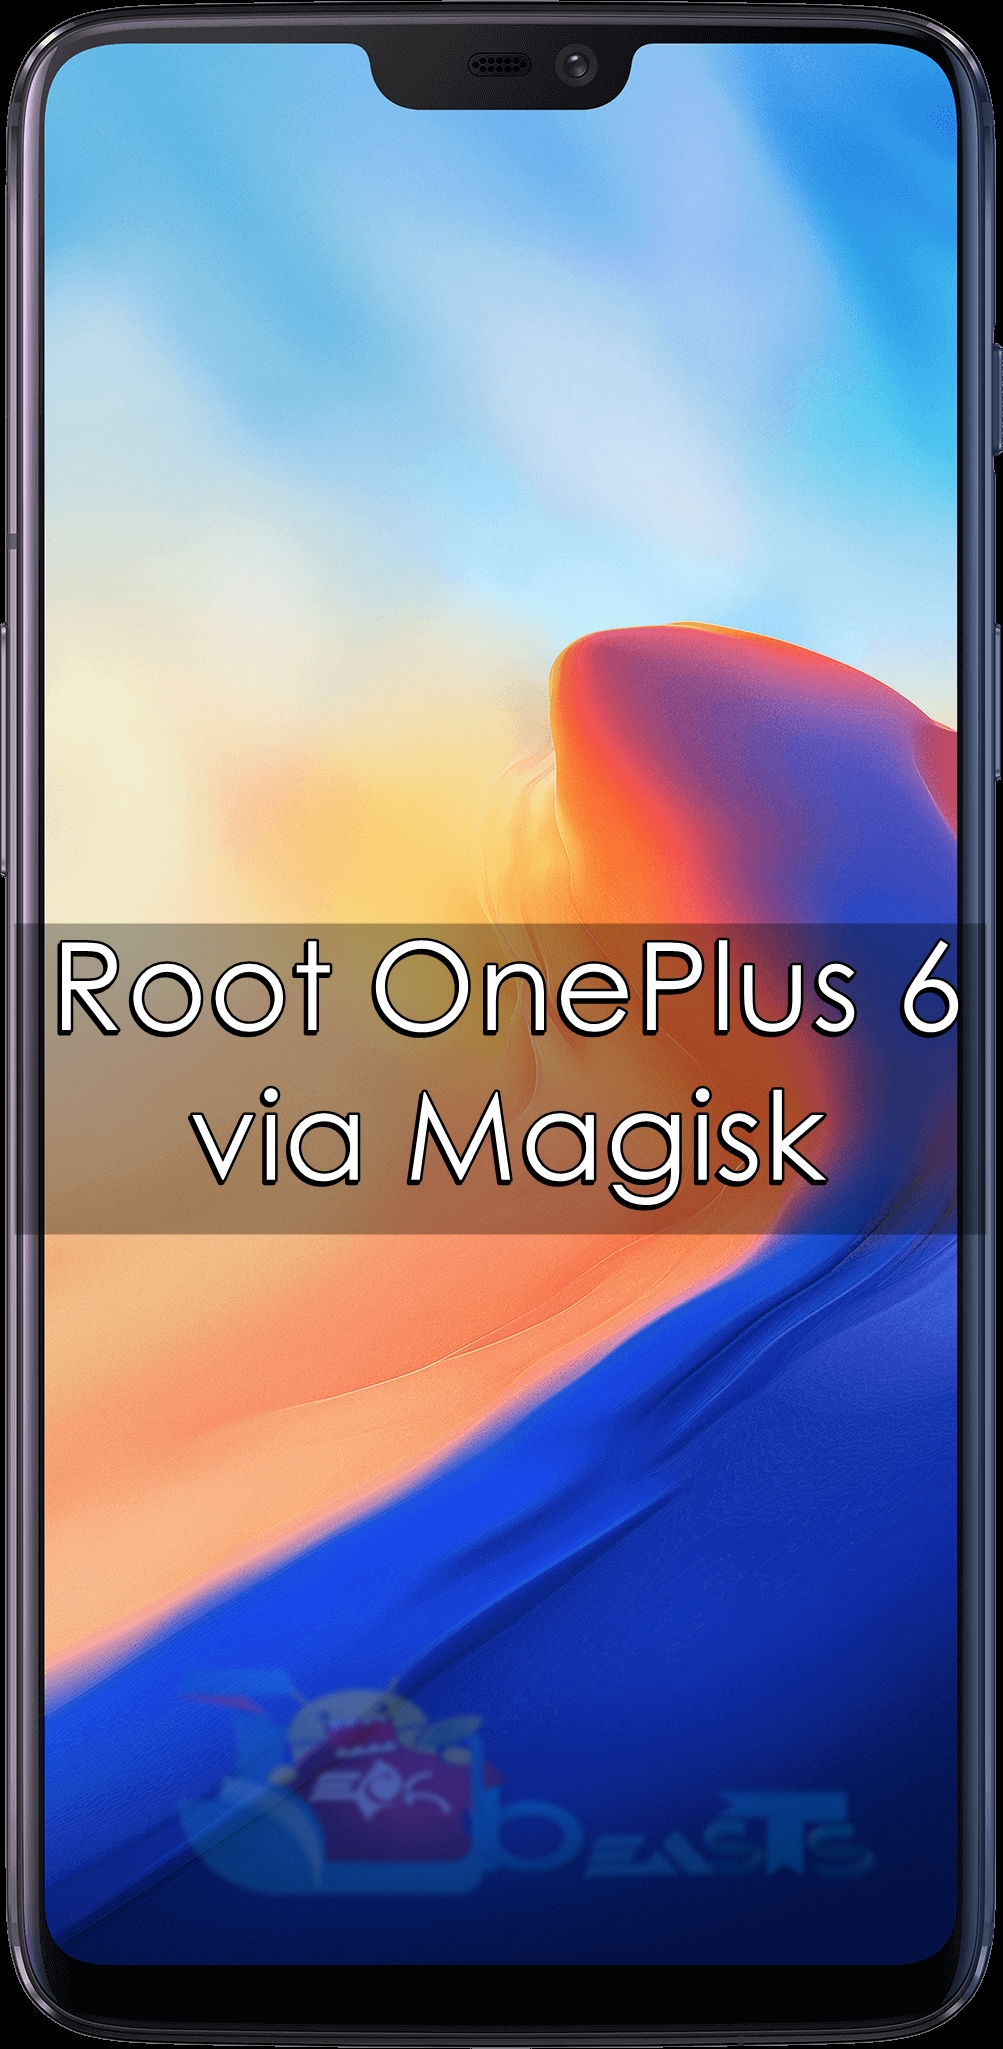 How to Root OnePlus 6 via Magisk | TechBeasts